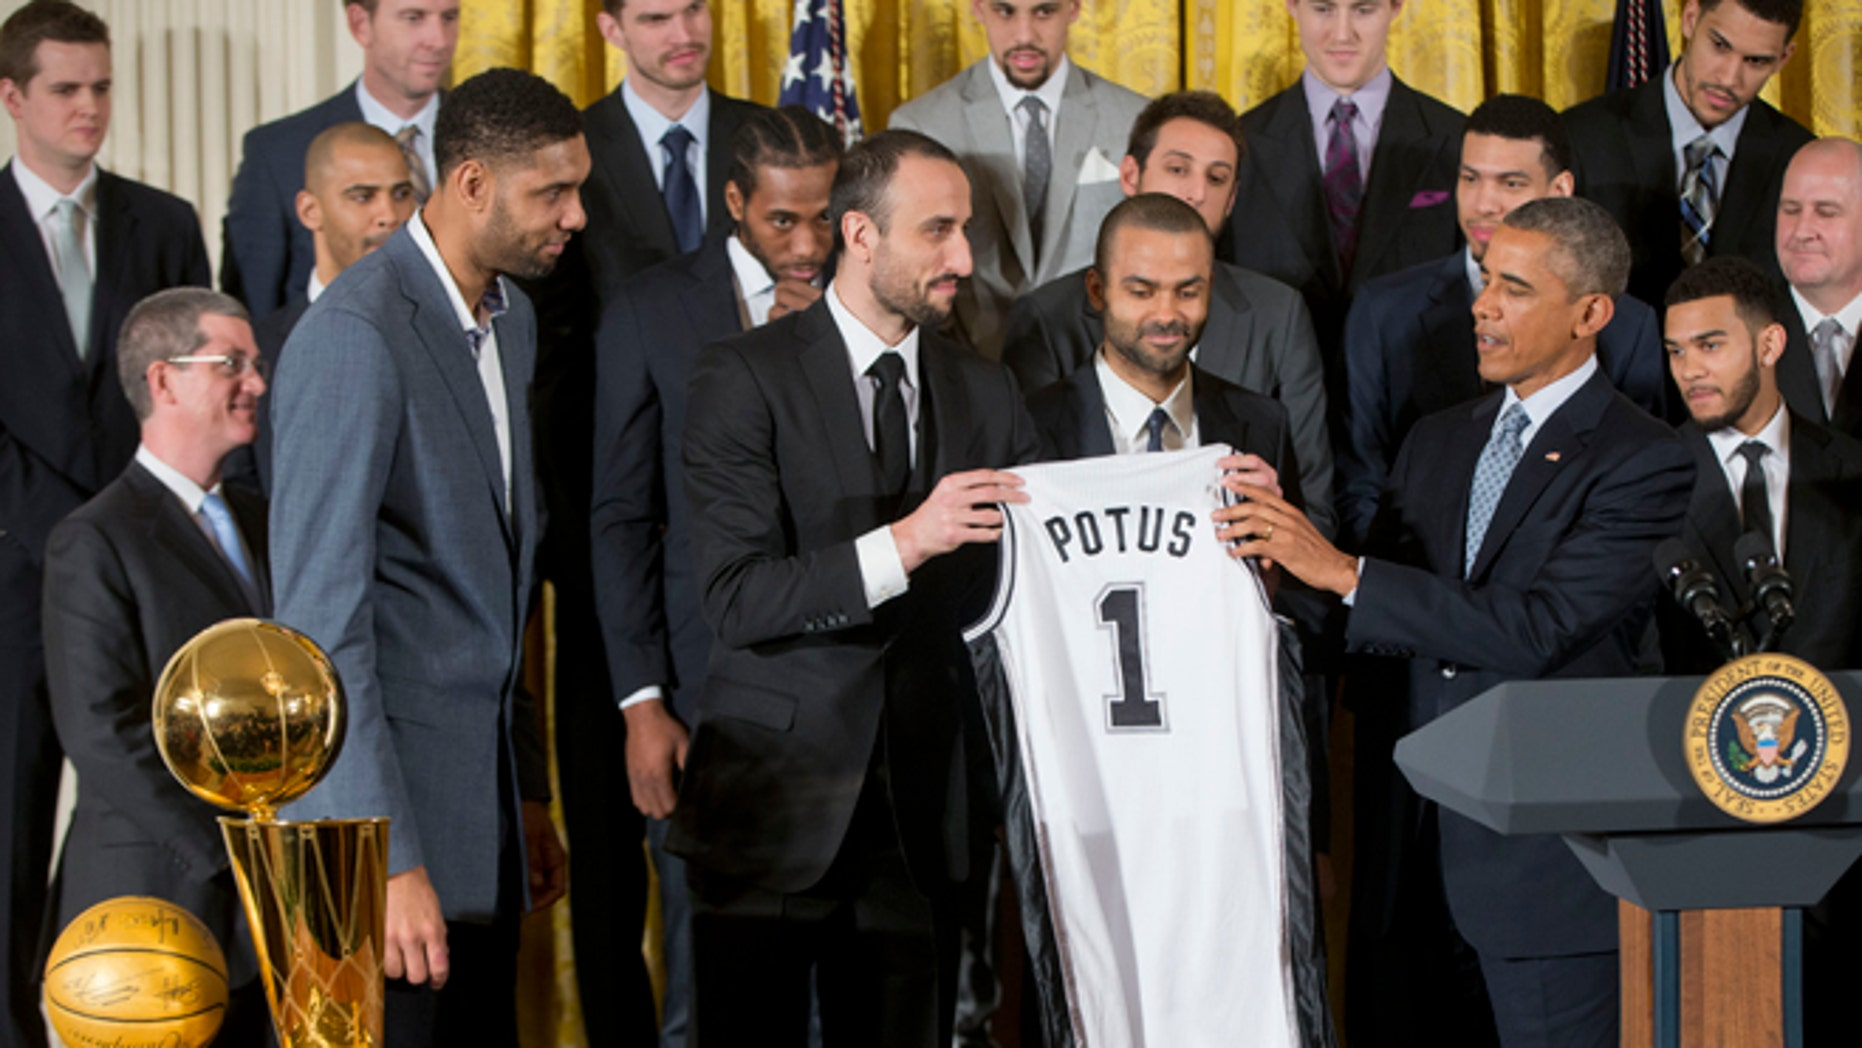 President Barack Obama accepts a San Antonio Spurs team basketball jersey from San Antonio Spurs team members, from left, forward Tim Duncan of the Virgin Islands, guard Manu Ginobili of Argentina, and guard Tony Parker of France, as the president honored the 2014 NBA Champions the San Antonio Spurs basketball team during a ceremony in the East Room White House in Washington, Monday, Jan. 12, 2015.  (AP Photo/Pablo Martinez Monsivais)